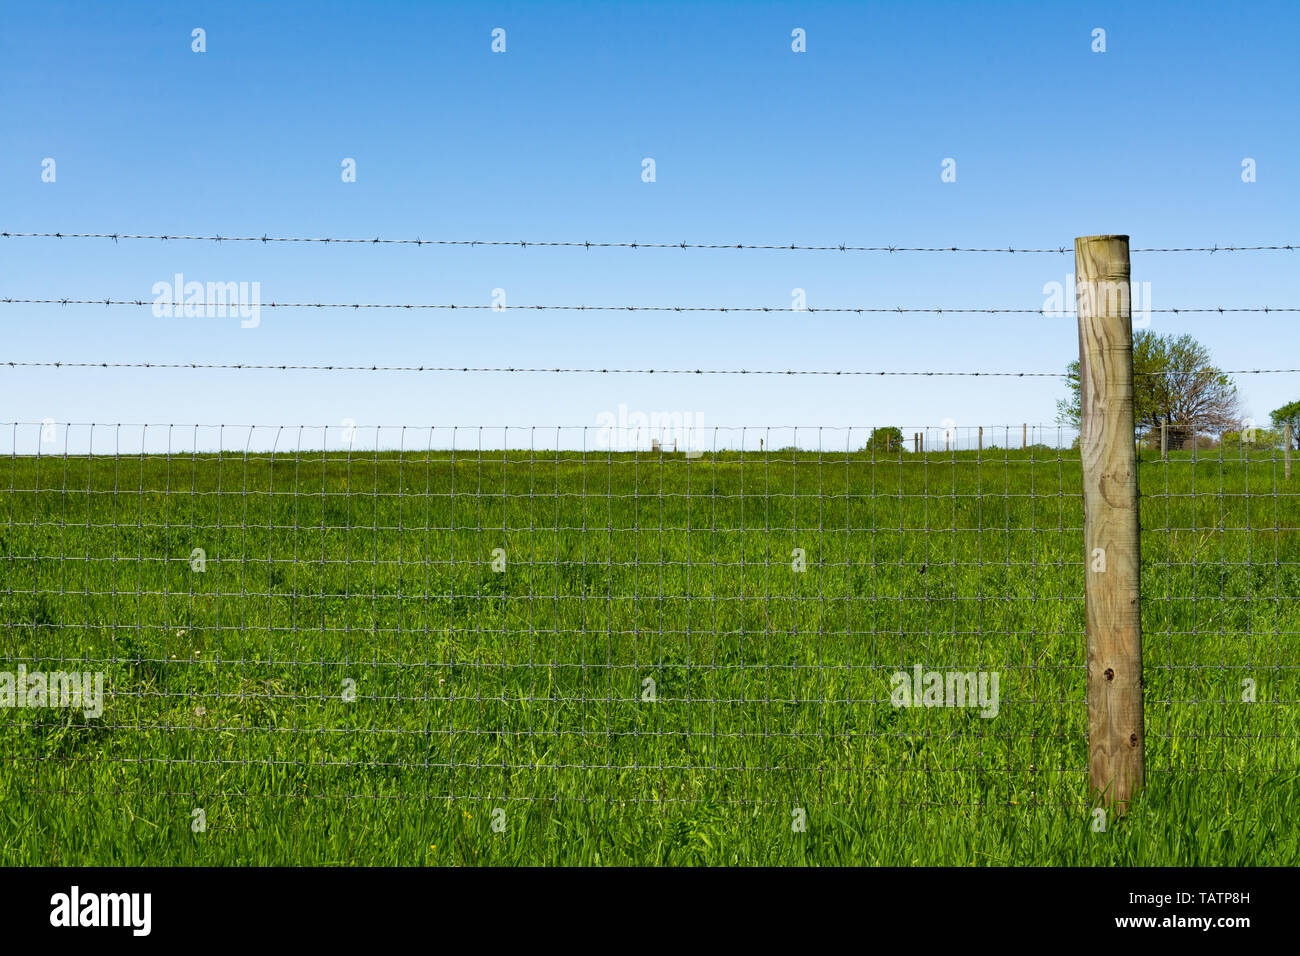 Single wooden post and wire fence with blue skies and prairie in the background. - Stock Image